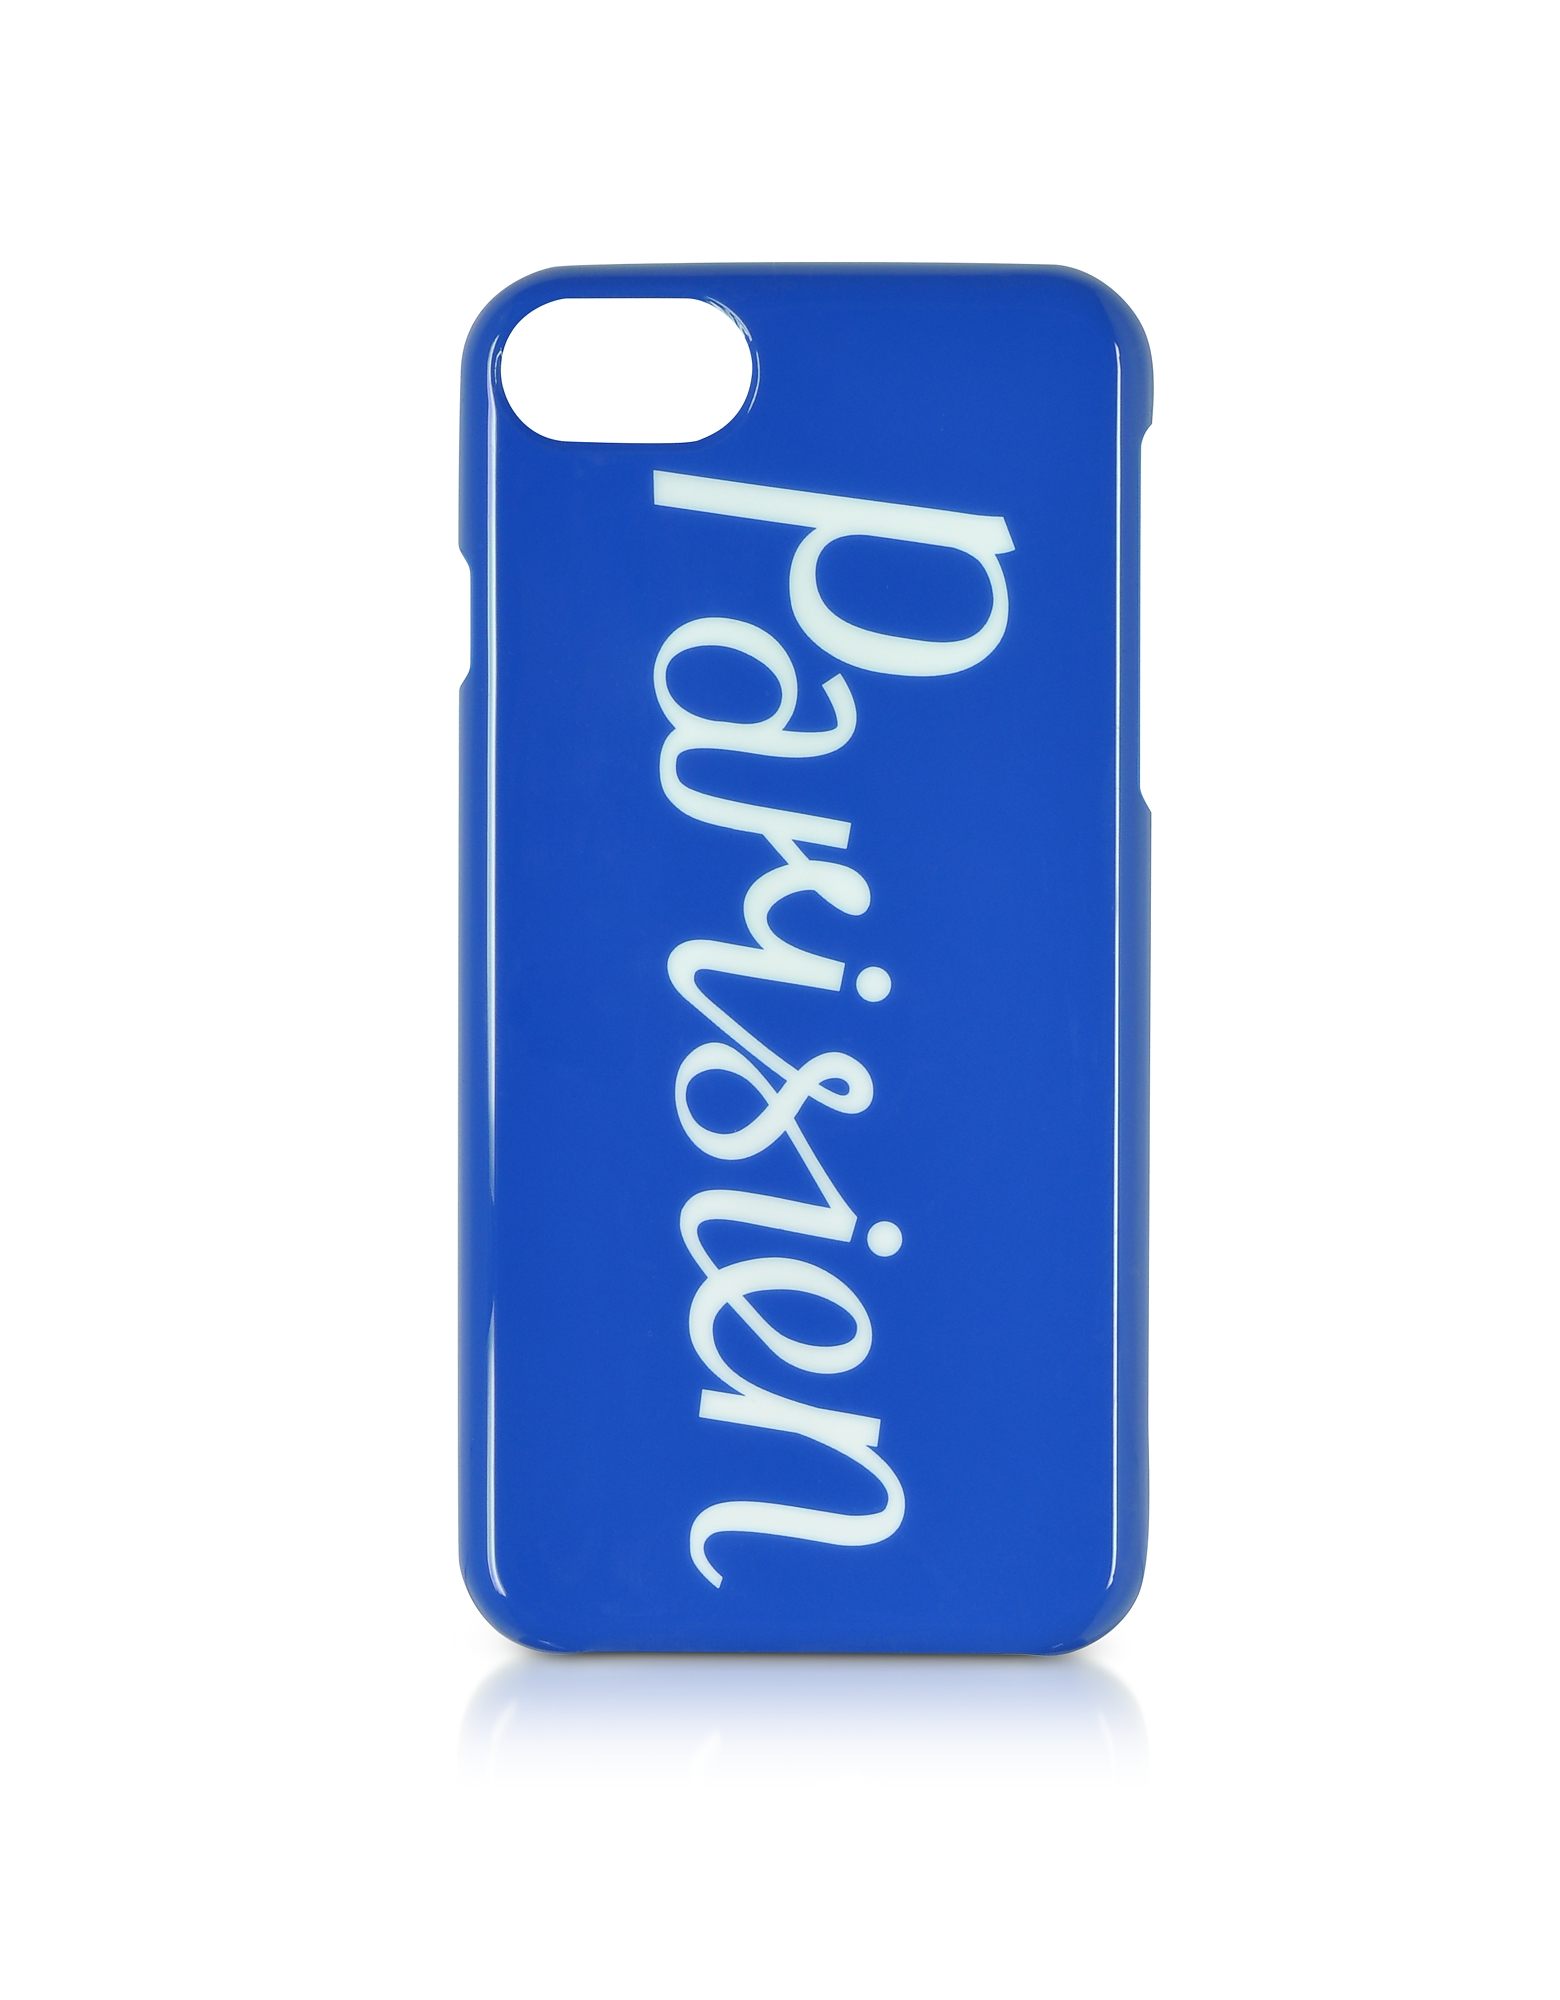 Maison Kitsuné Handbags, Parisien Royal Blue Iphone 7 Case